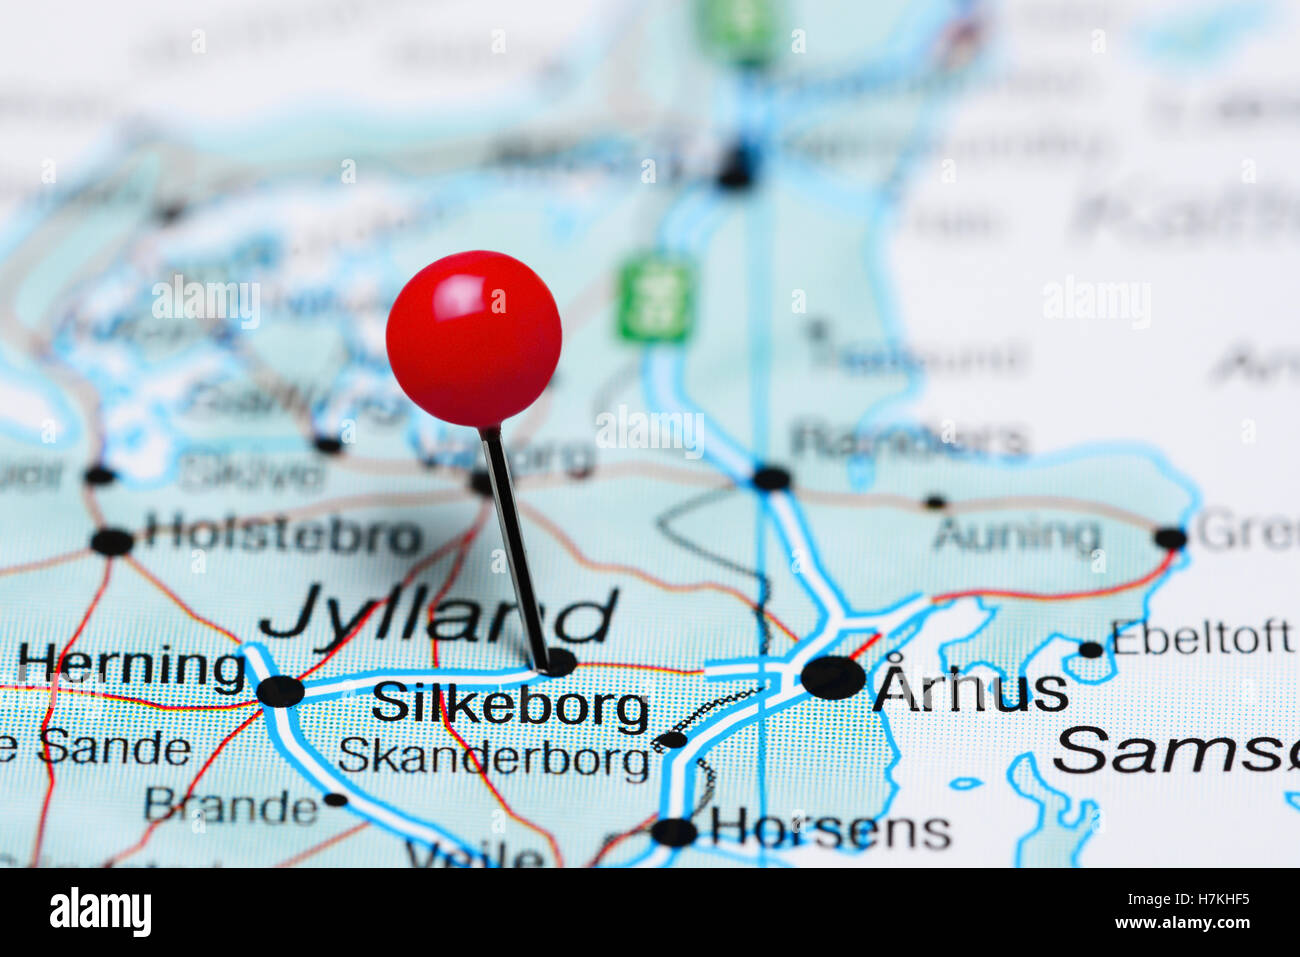 Silkeborg pinned on a map of Denmark Stock Photo: 125206009 - Alamy